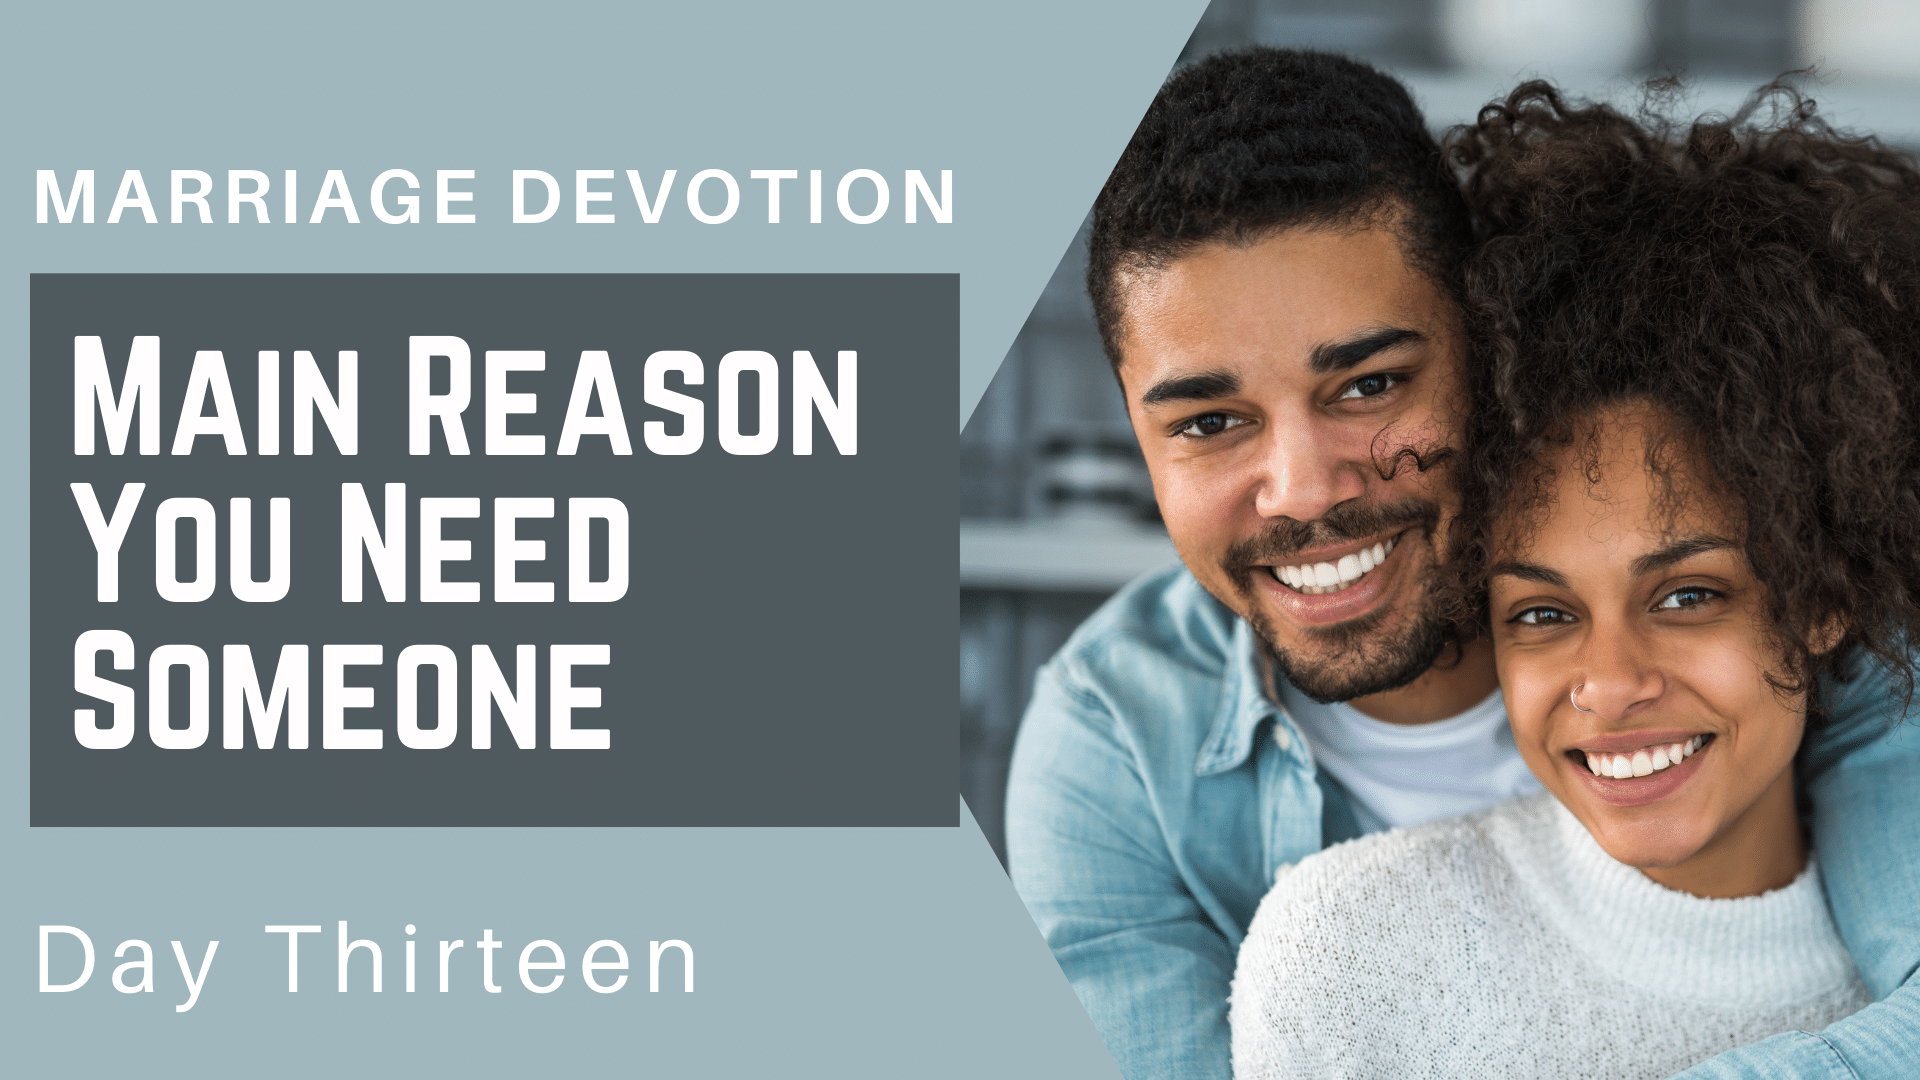 Marriage Devotion Day 13 – The Main Reason You Need Someone